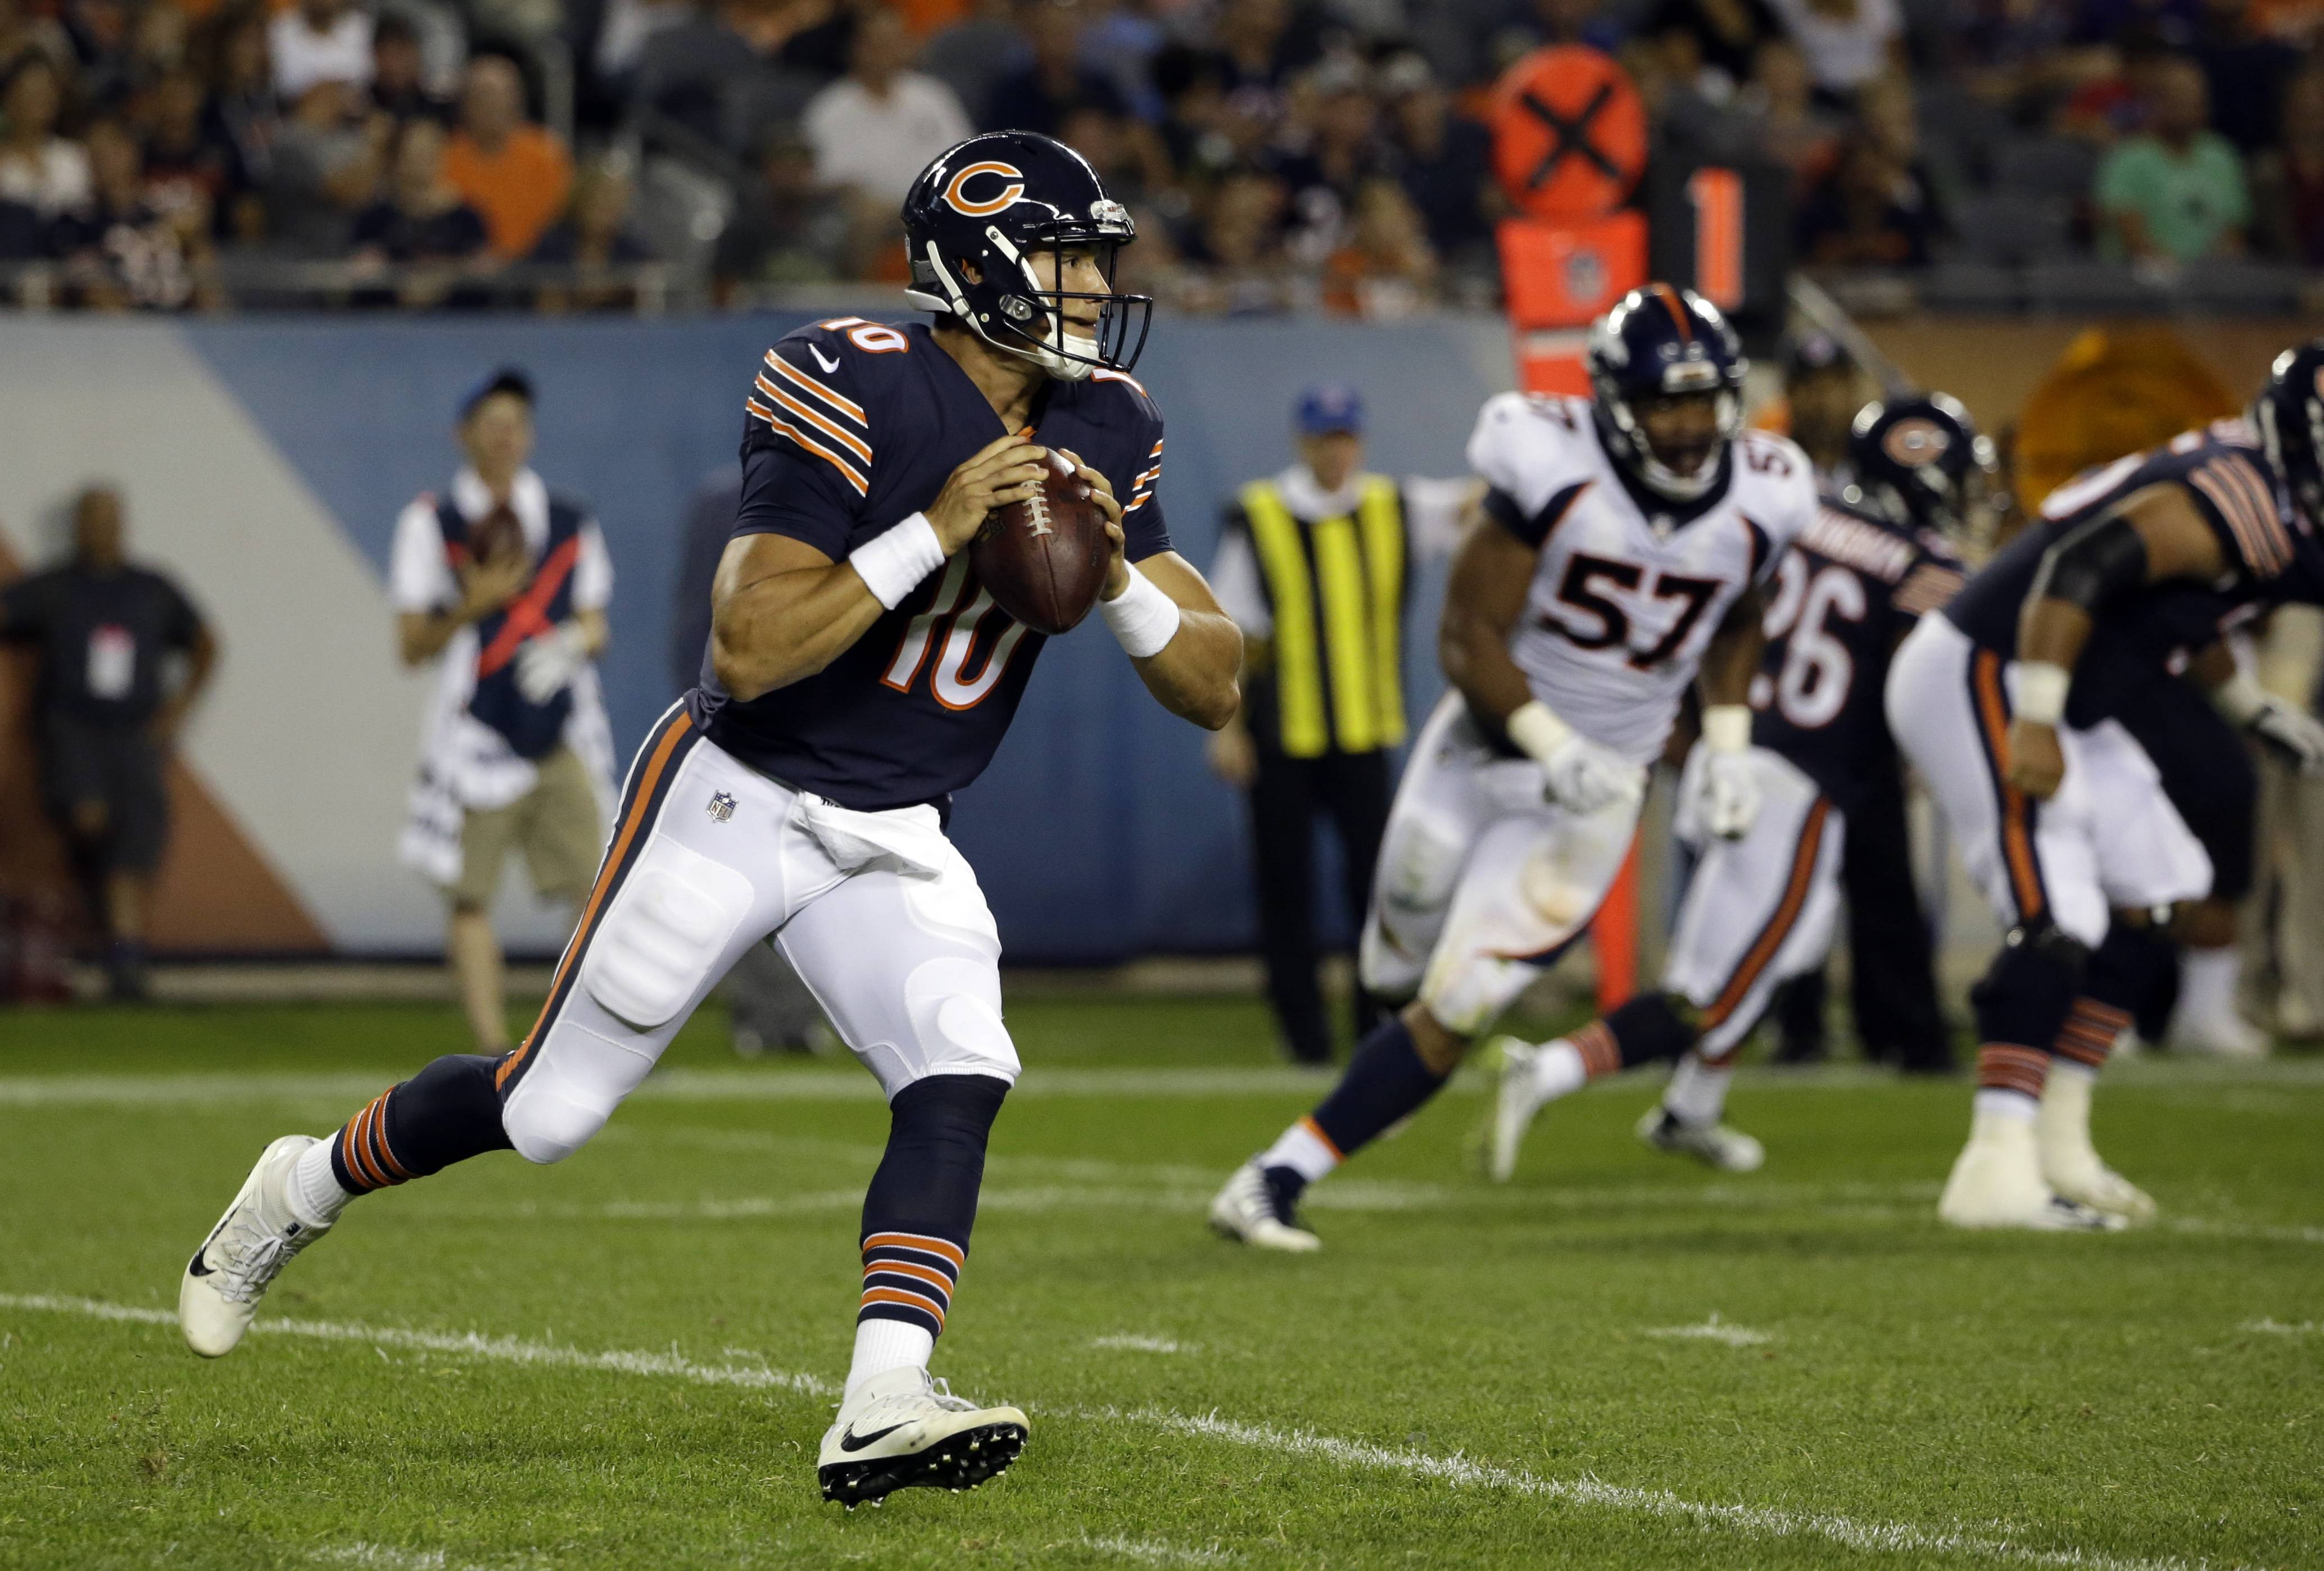 For Chicago Bears' Trubisky, it's all about improving